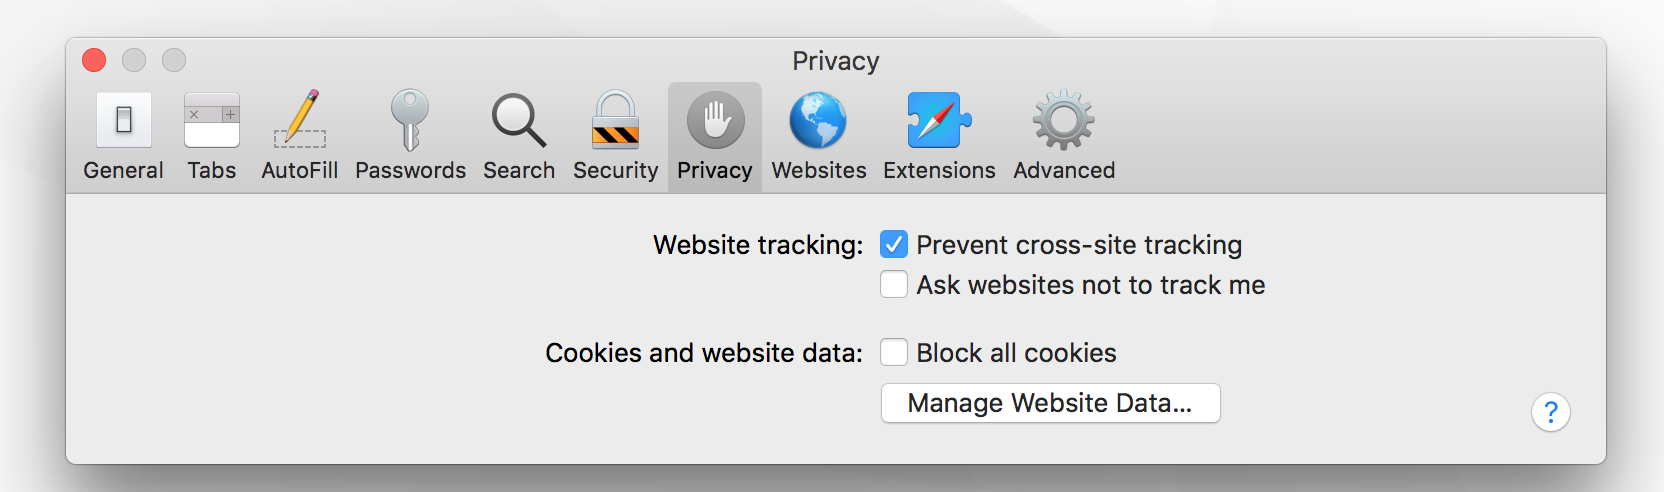 Enable cookies in the Privacy settings